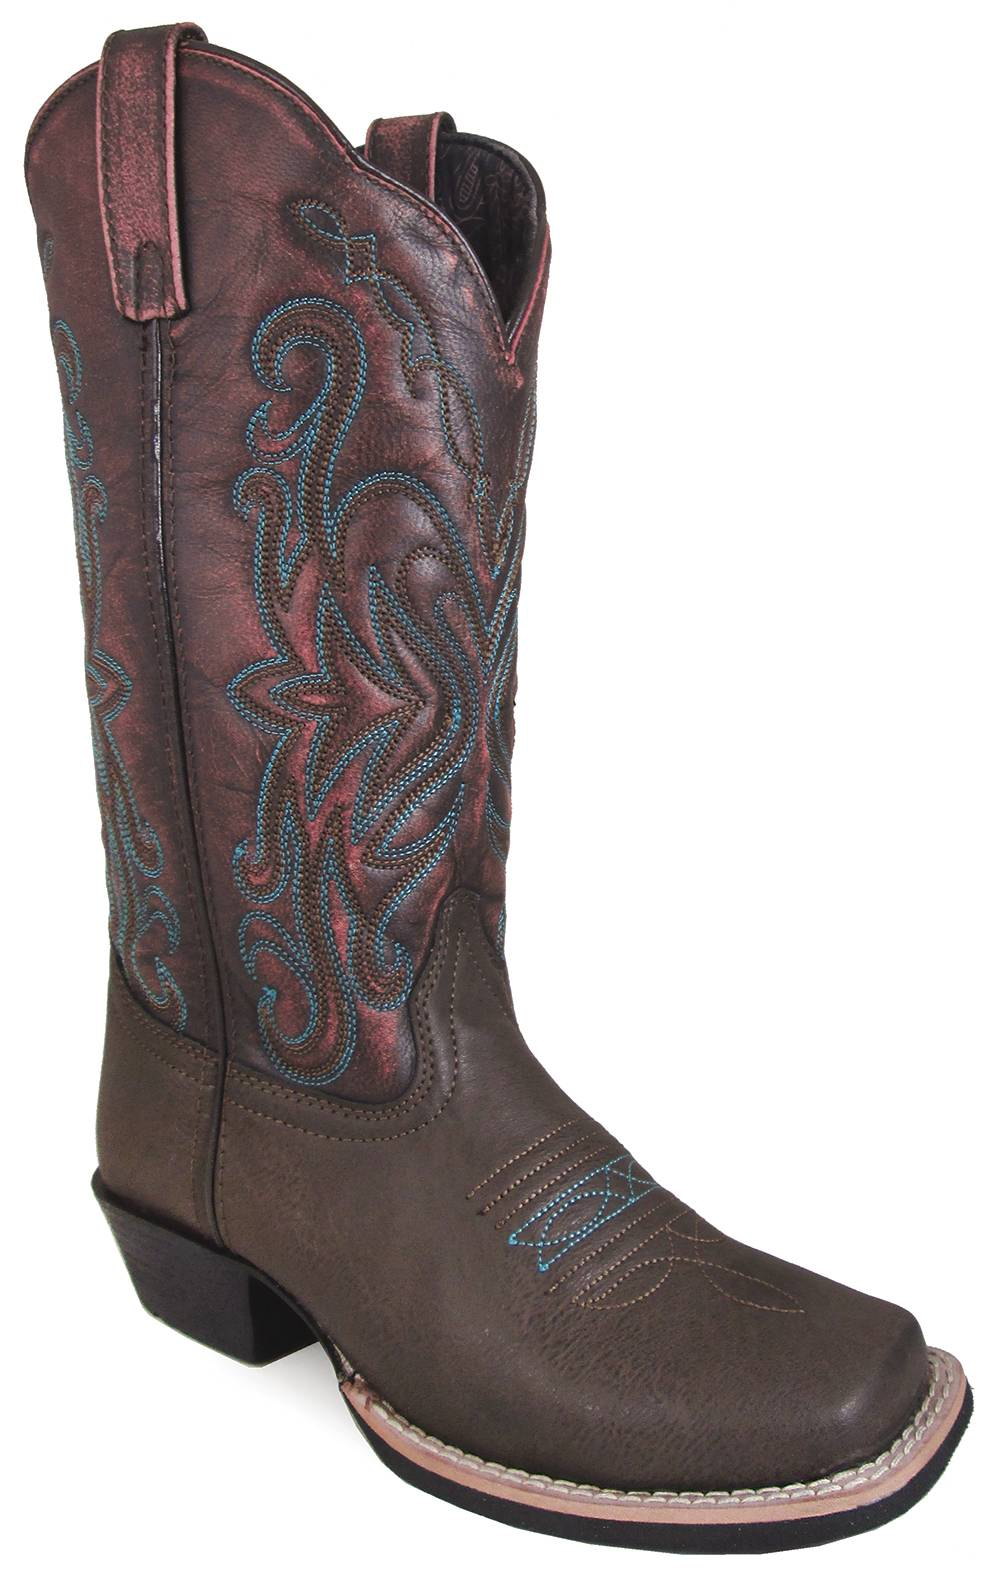 Smoky Mountain Fusion 2 Square Toe Boots - Ladies - Brown/Vintage Red